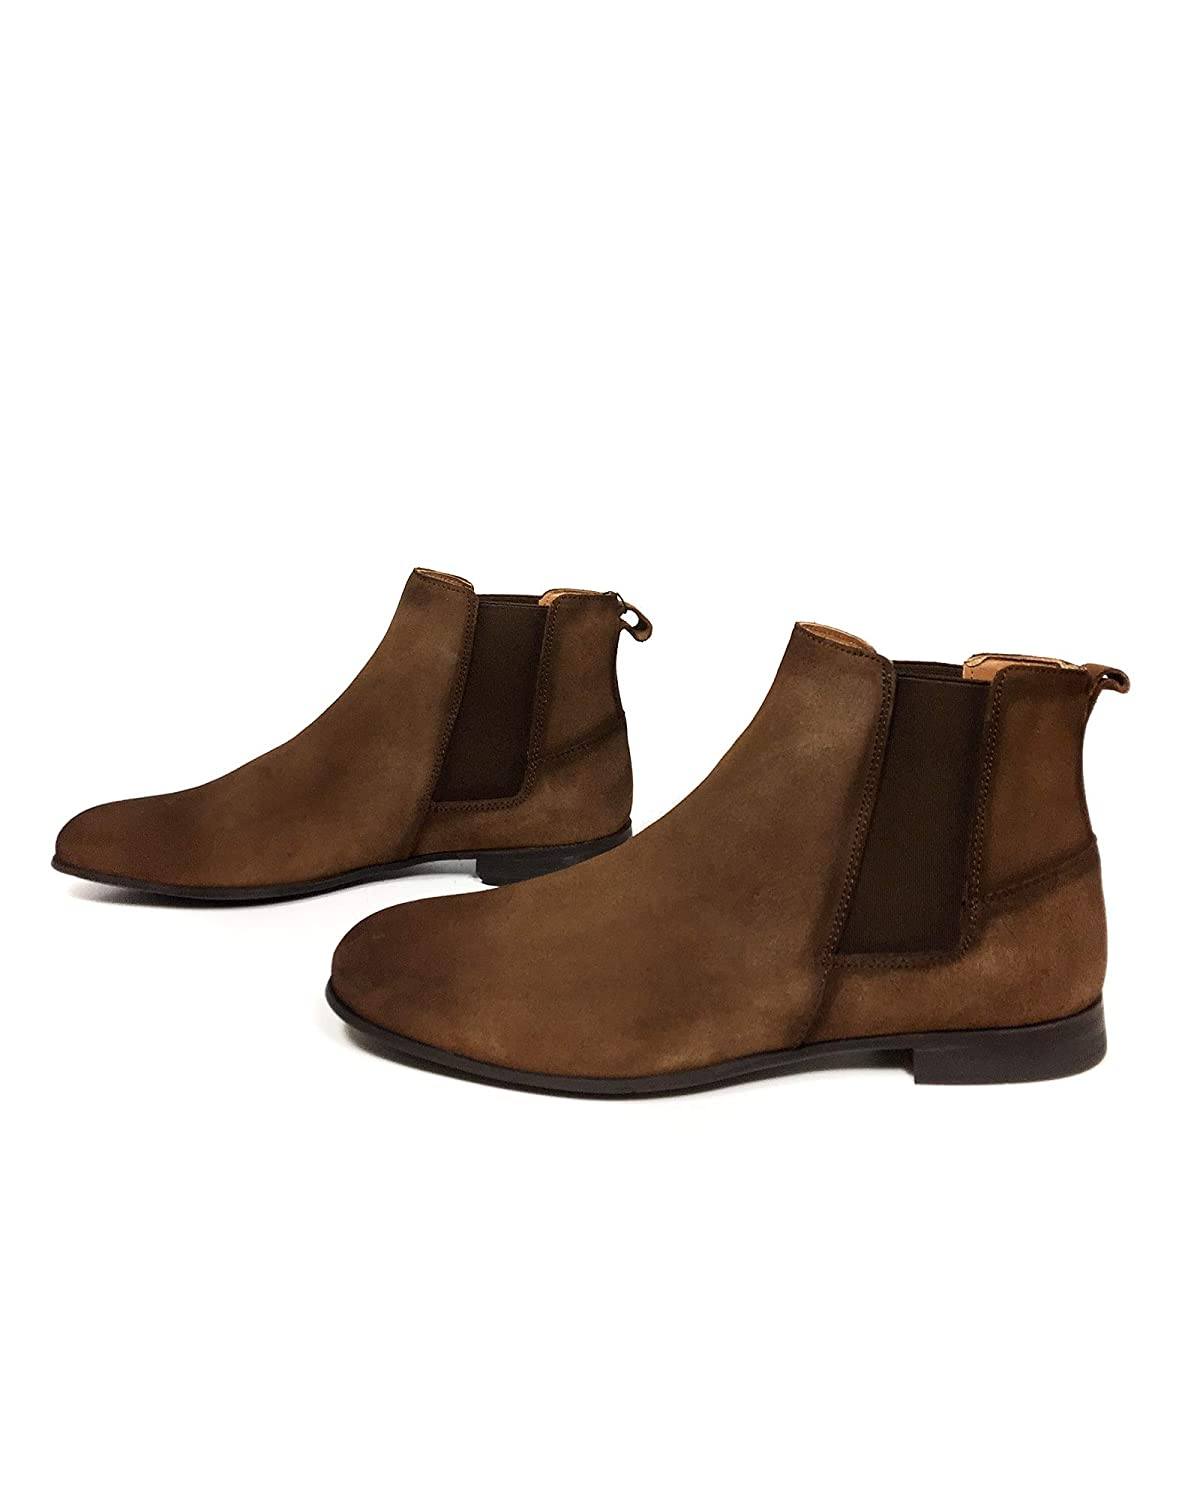 e16bbfa844aac Amazon.com: Zara Men Brown leather ankle boots 5002/302: Clothing